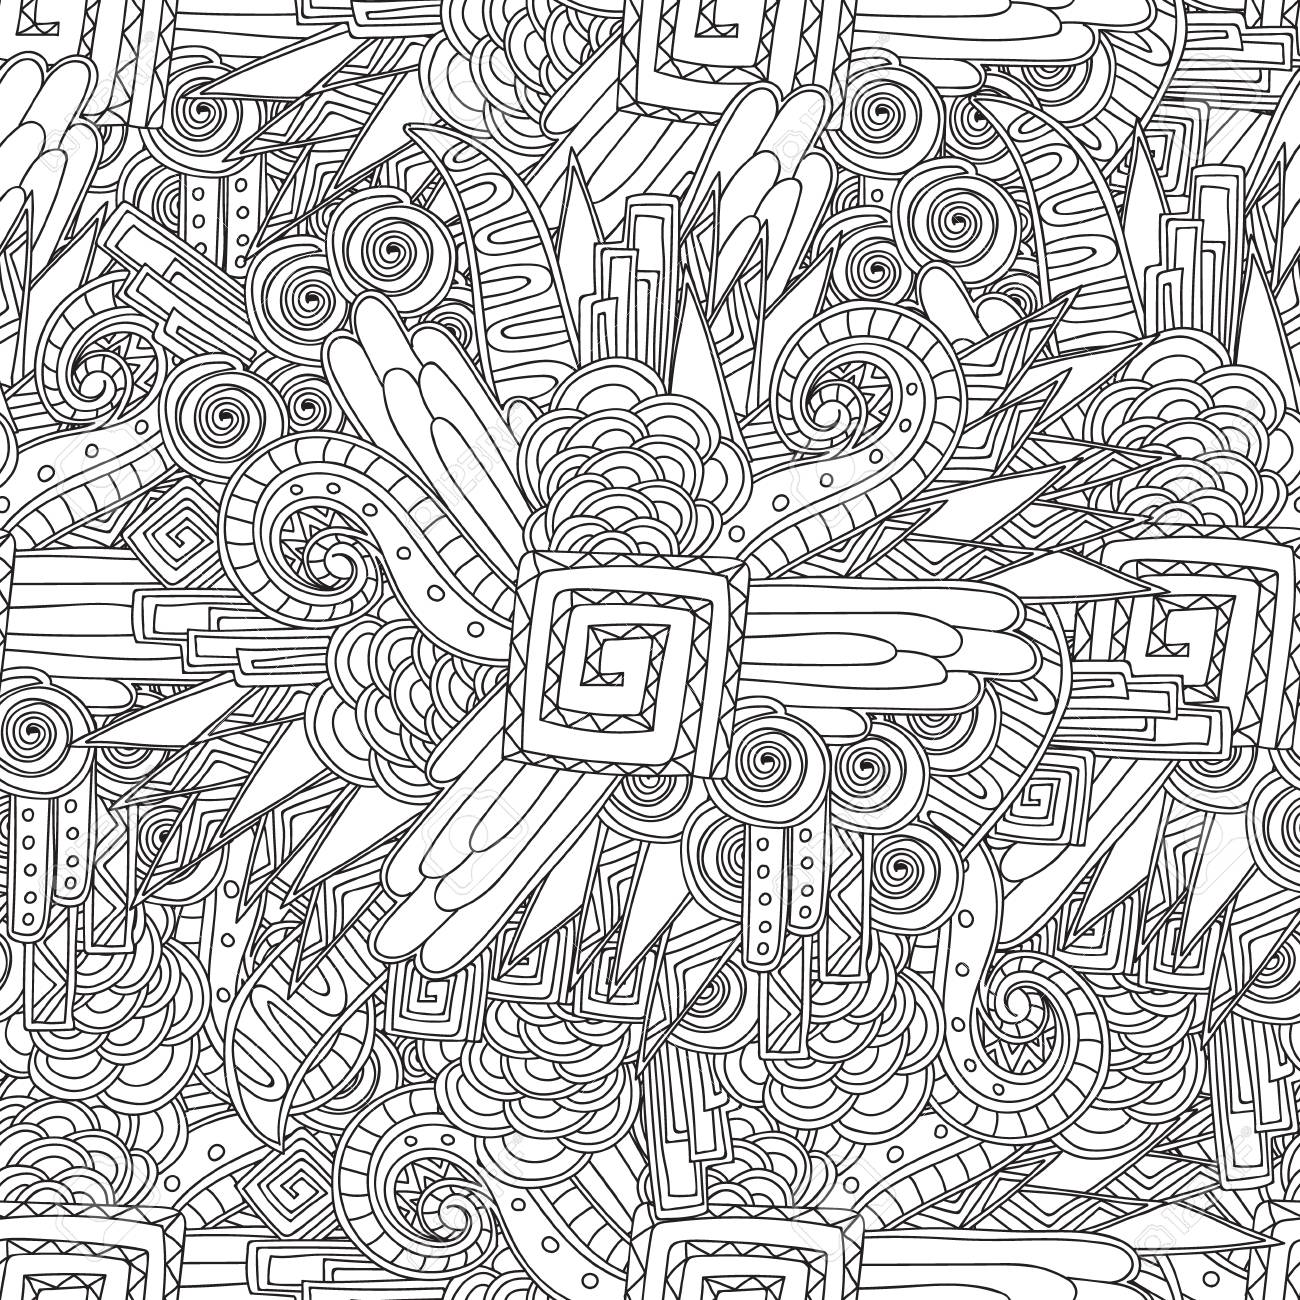 Coloring Page For Sdults Coloring Book.Seamless Black And White ...